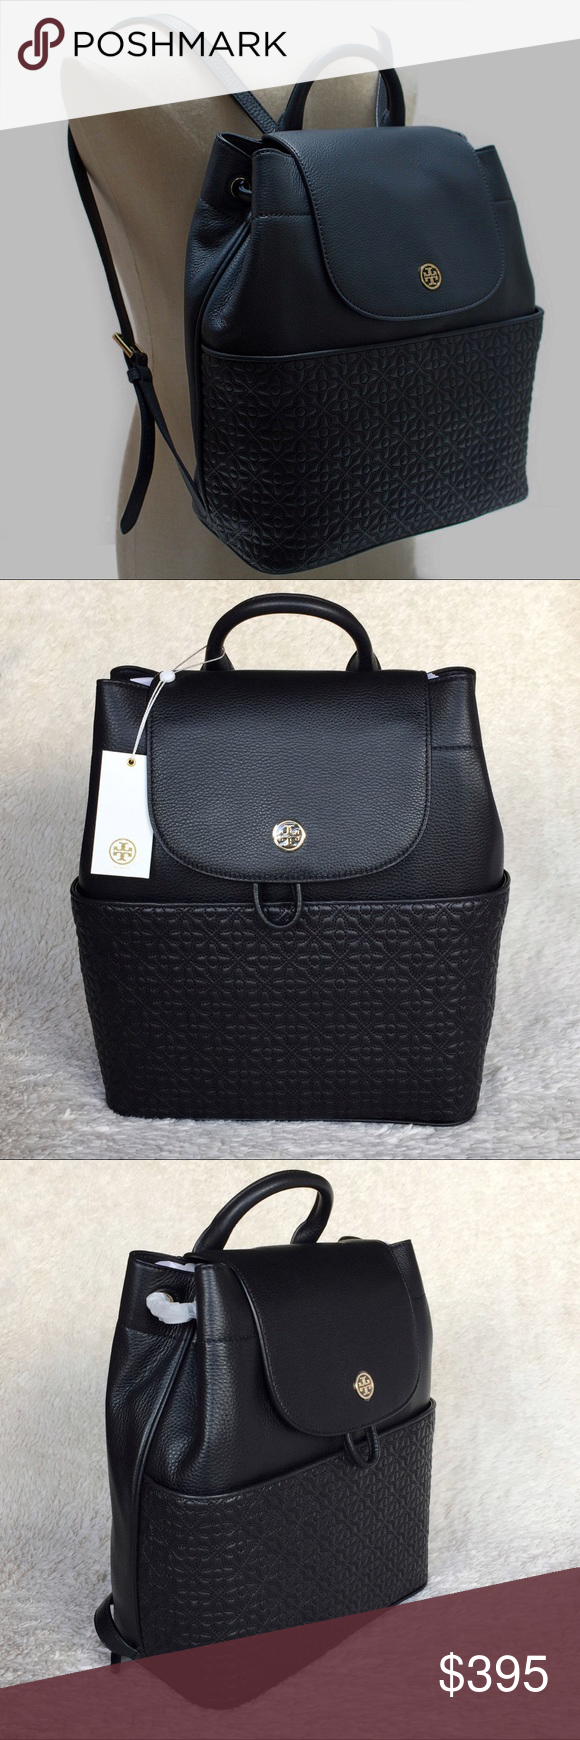 92c08b8d32d7 NEW TORY BURCH BRYANT QUILTED LEATHER BACKPACK Authentic. Brand new with  tags. This backpack